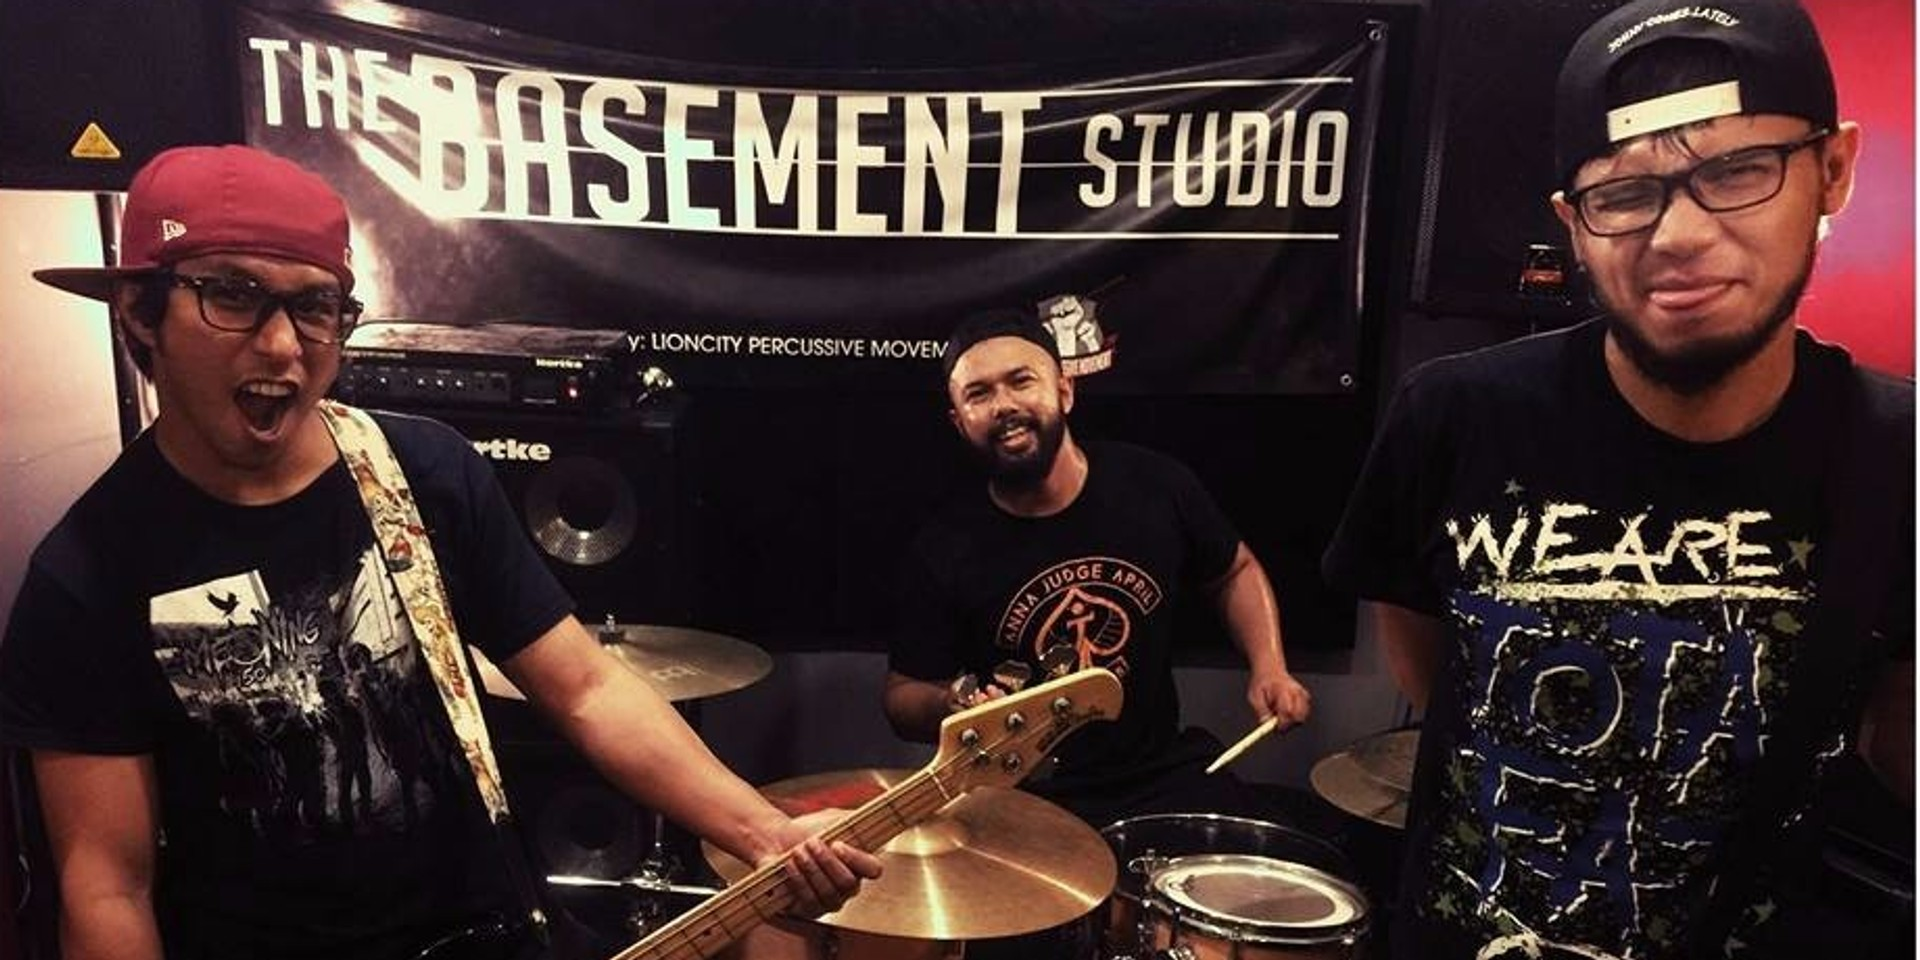 The Basement Studio takes over Timbre for their 4th Anniversary showcase